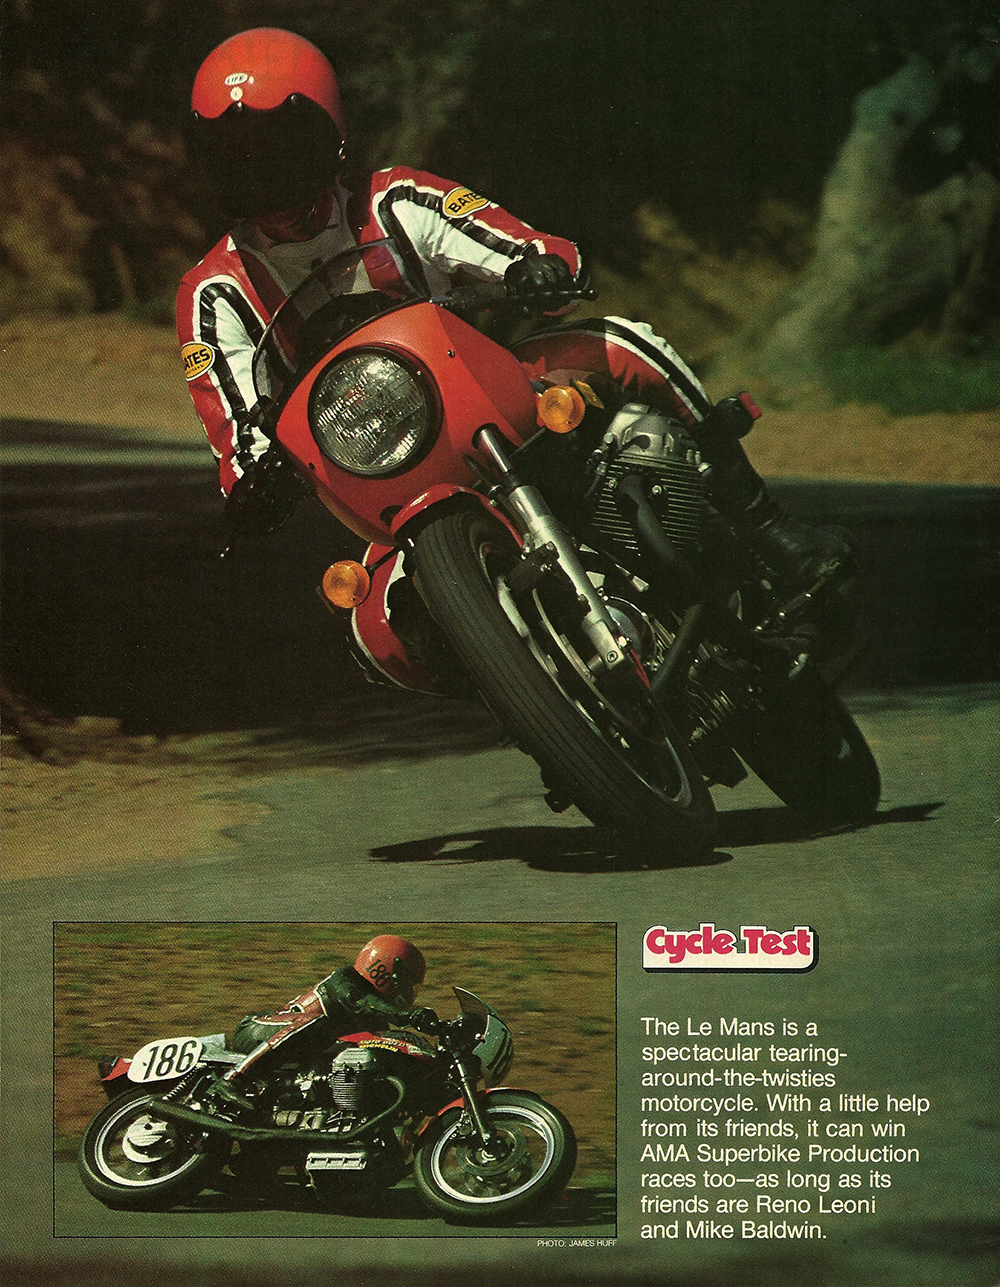 1977 Moto Guzzi 850 LeMans road test 01.jpg